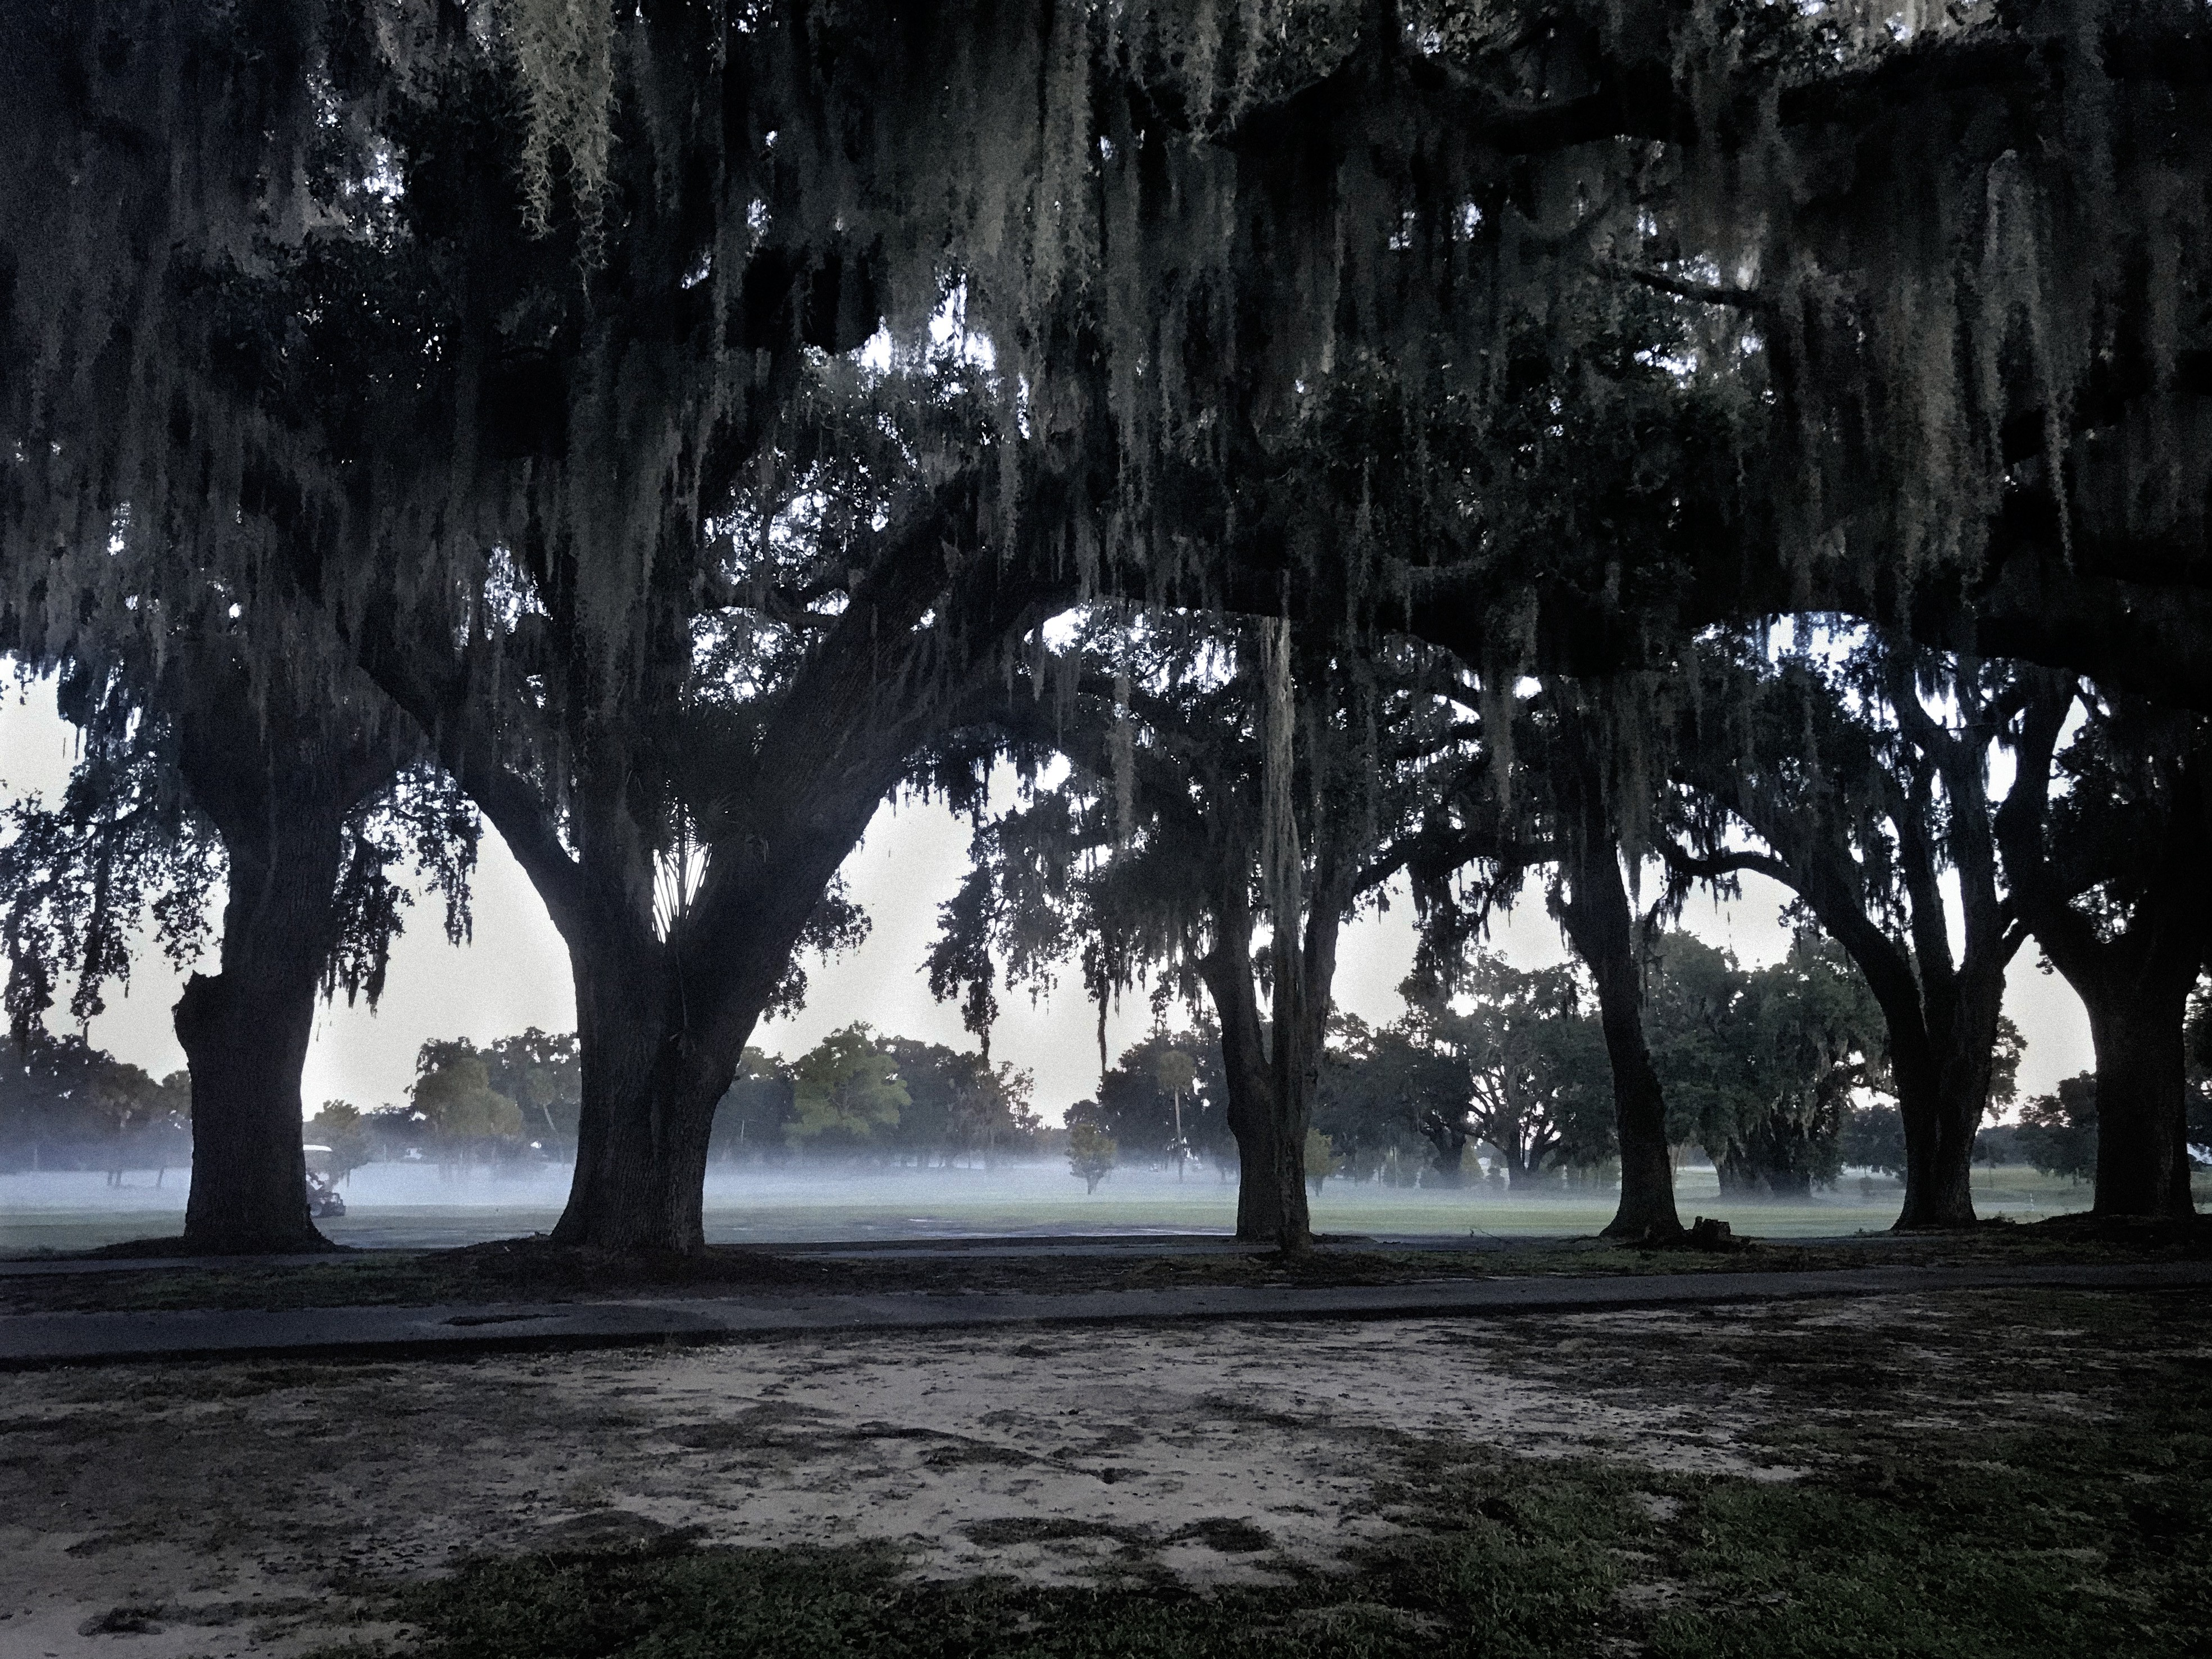 A misty field in the distance, silhouettes of live oak trees and spanish moss in the foreground.